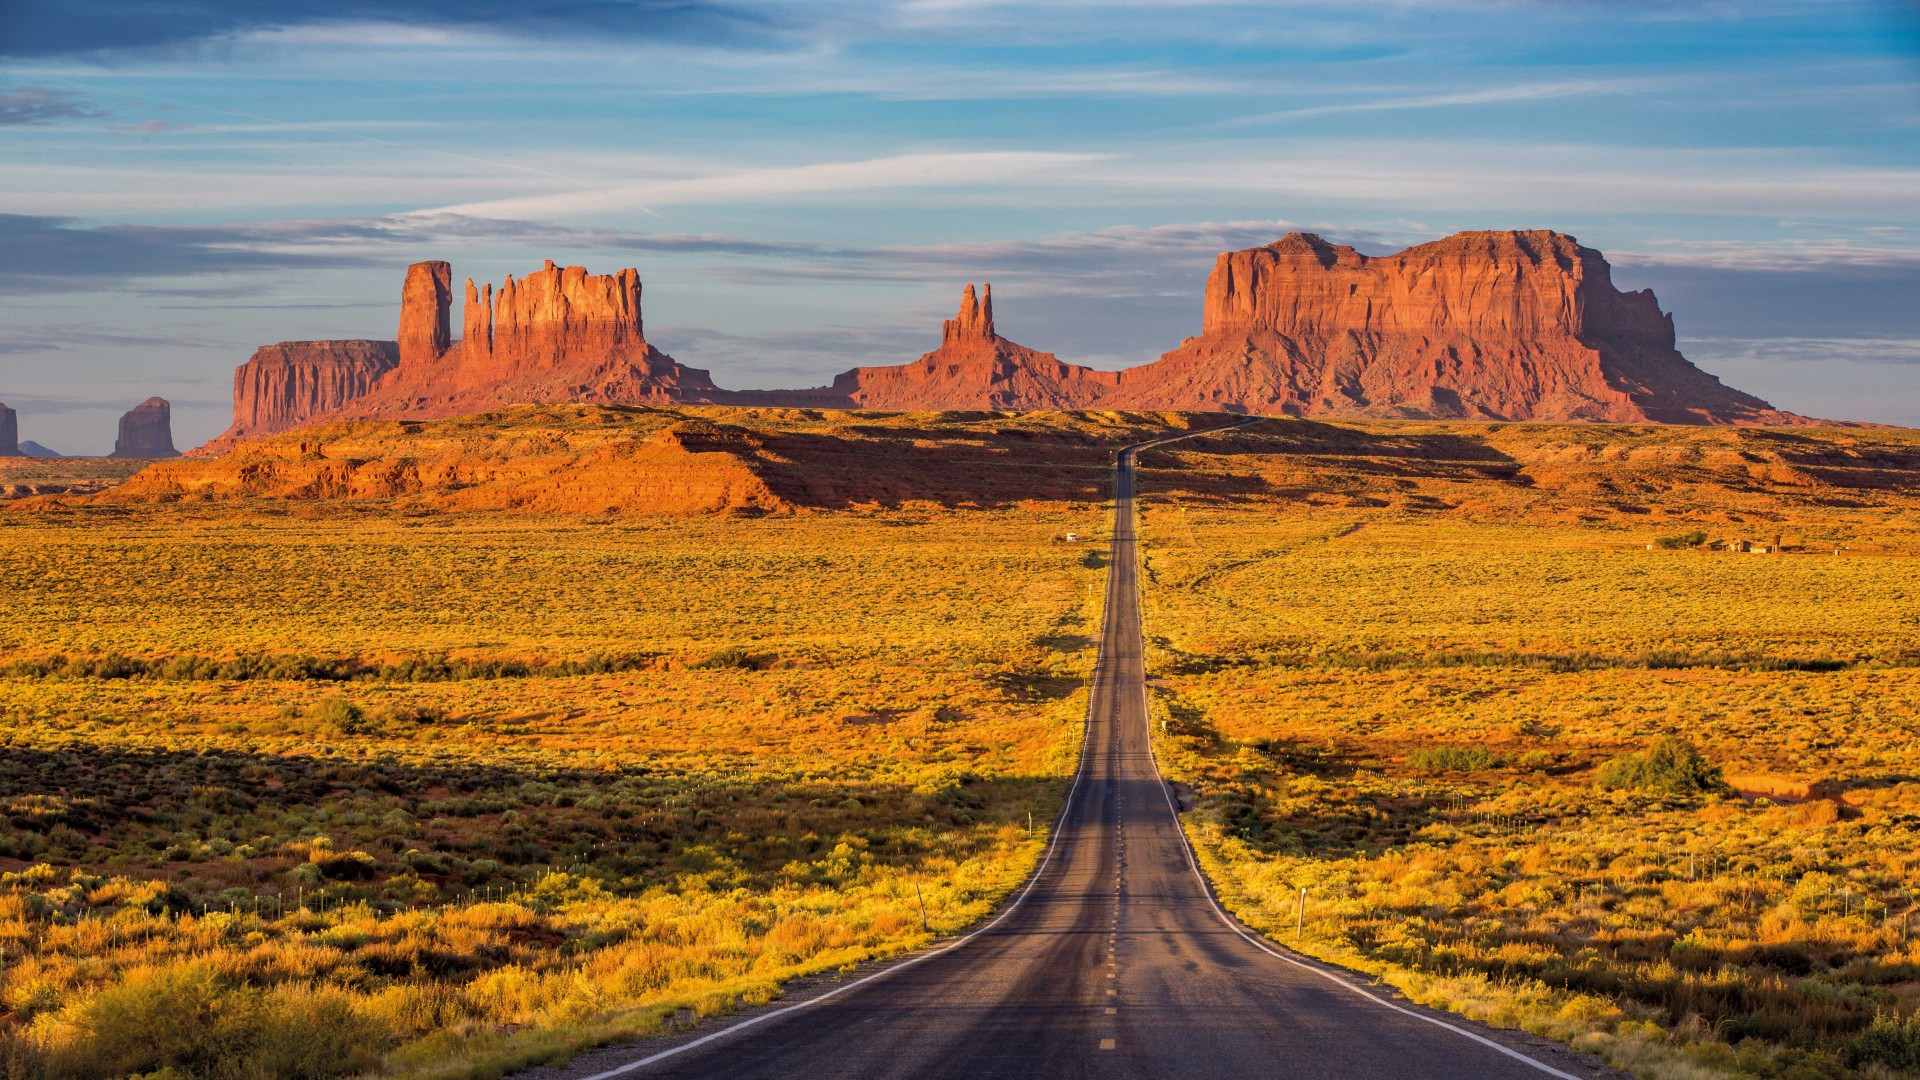 Monument valley road trip, USA